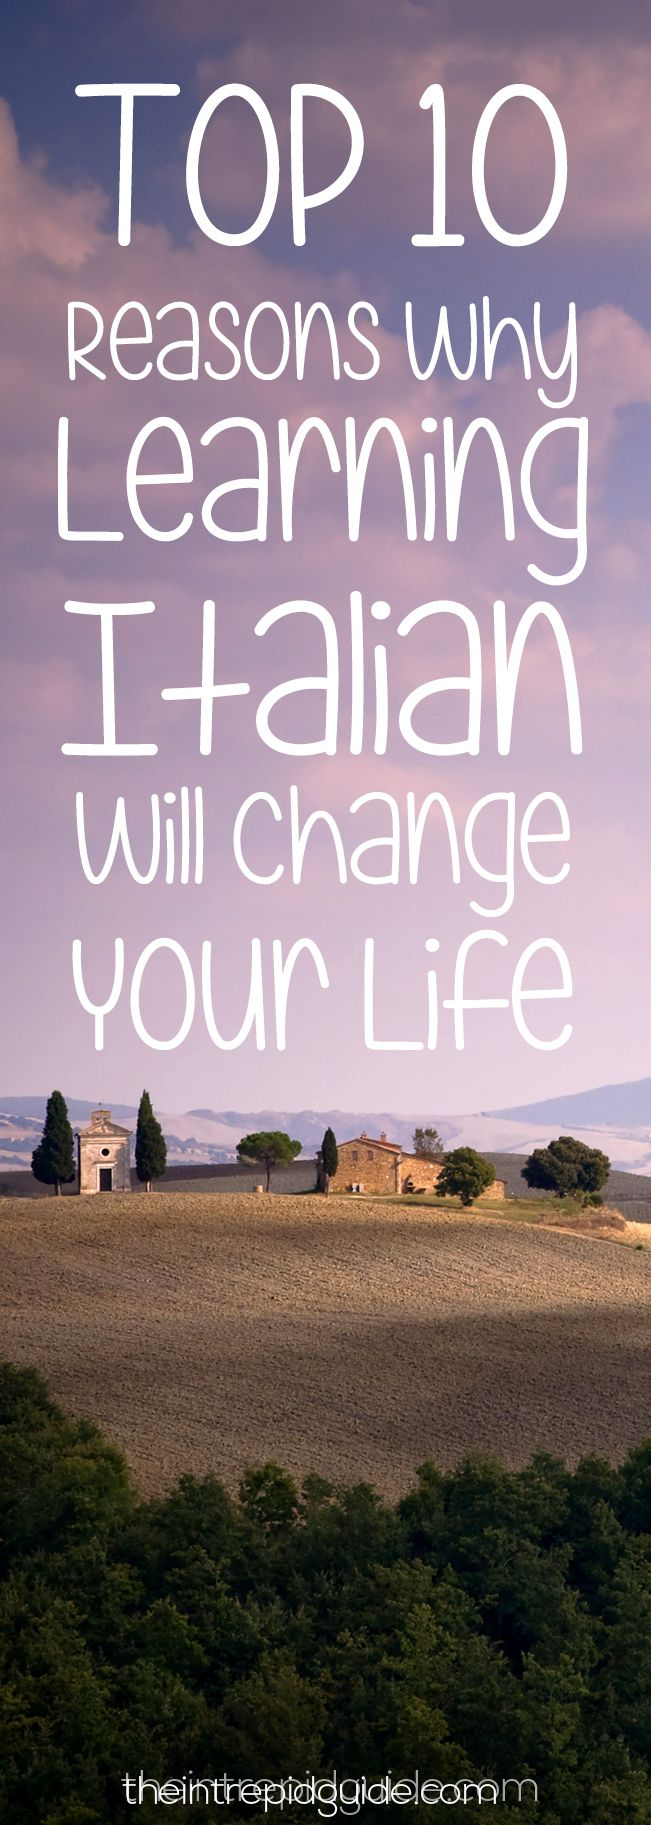 Italian Quotes About Life Mesmerizing New Italian Quotes With English Translation About Life